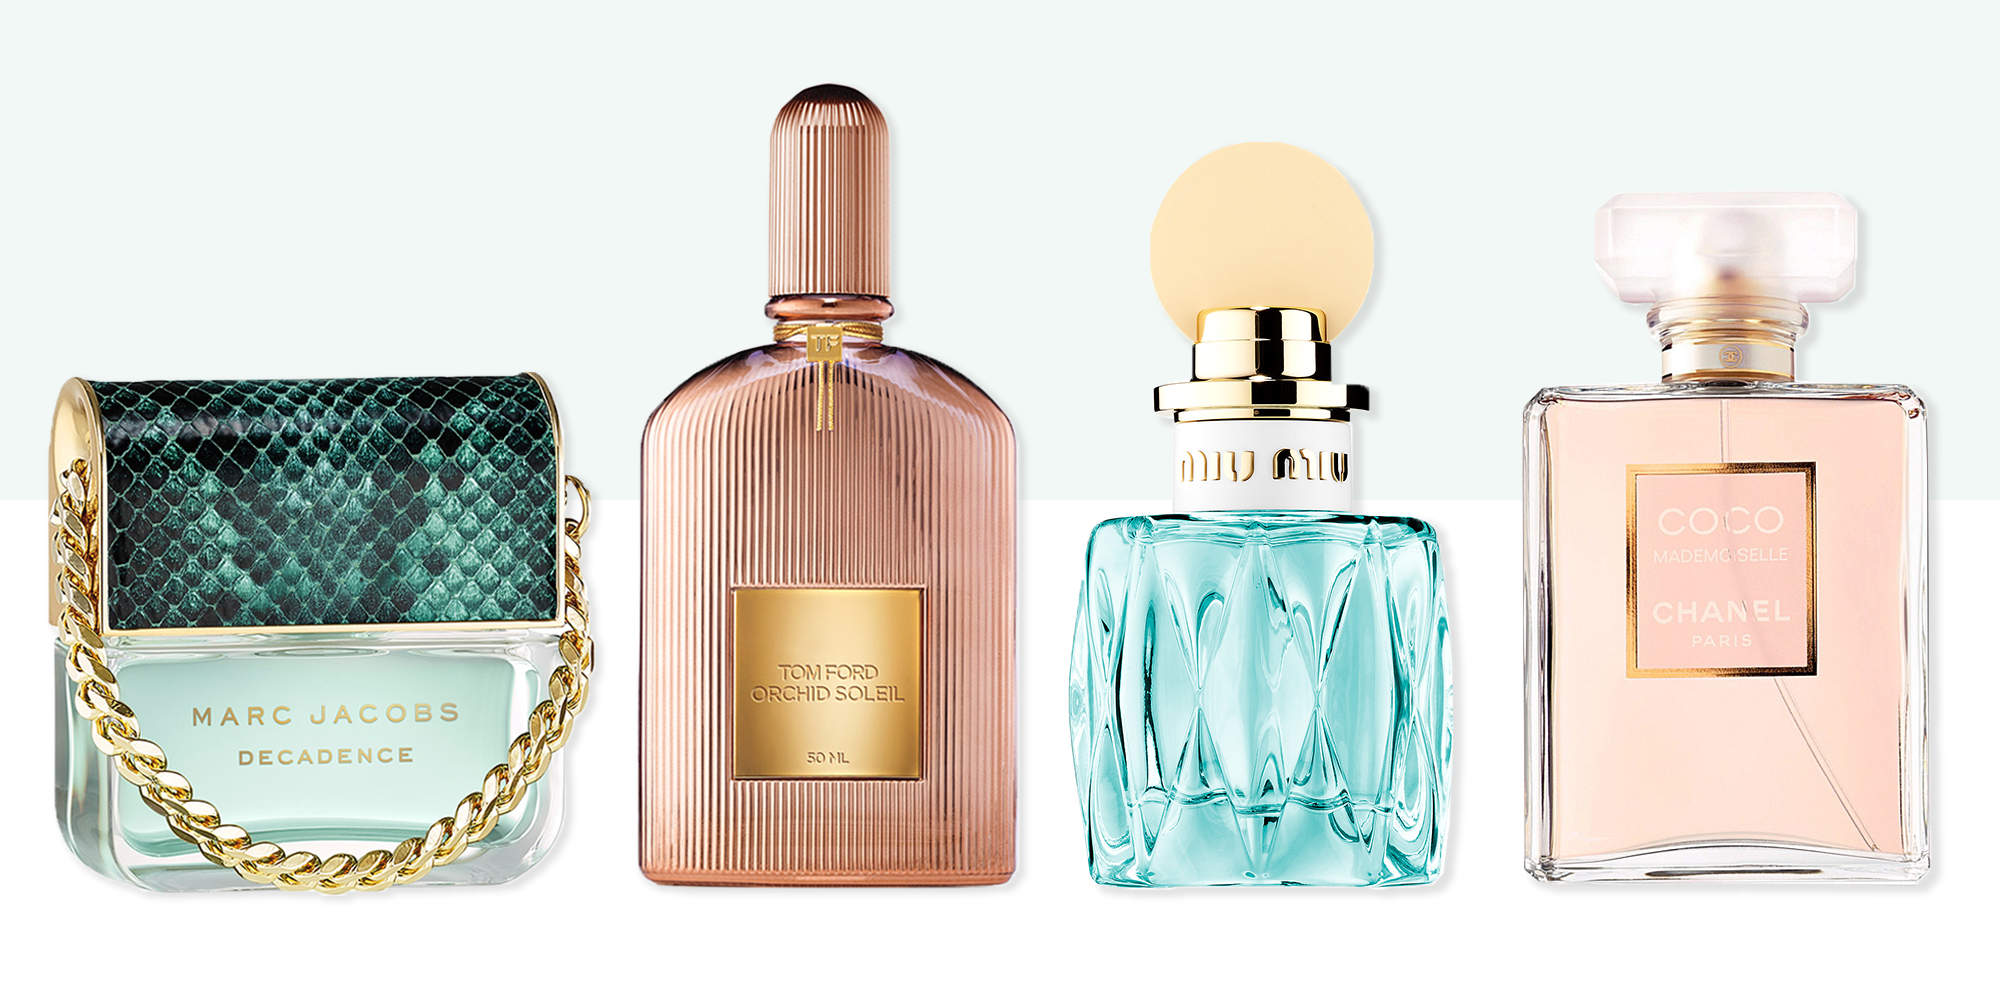 14 Best Perfumes for Women in 2017 - Sexy Winter ...